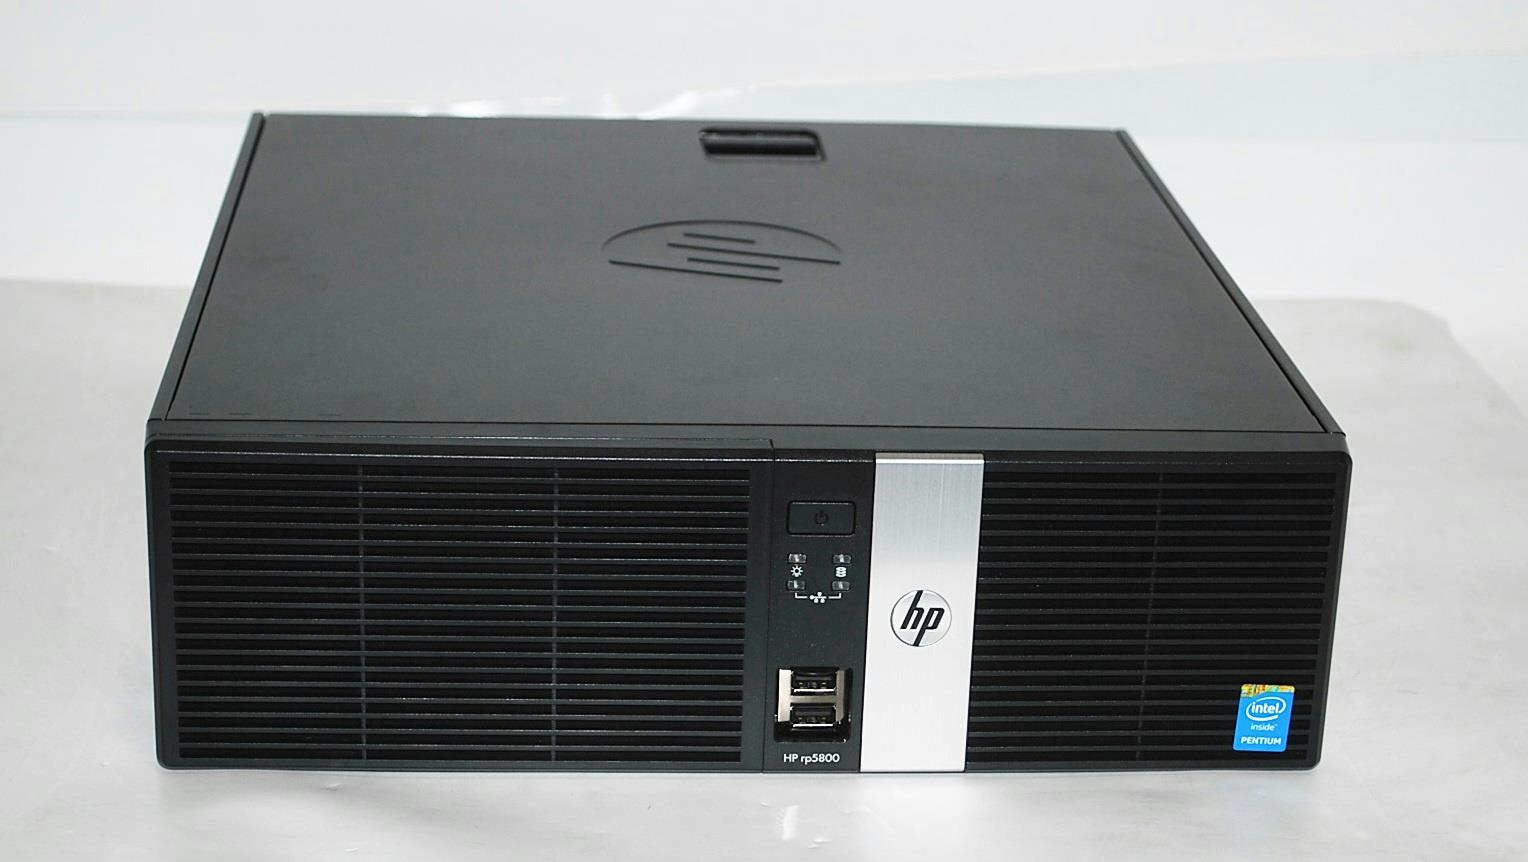 HP RP5800 case - Core i5 - 3.2 GHz - 4 GB - 500 GB-lan-3D sound